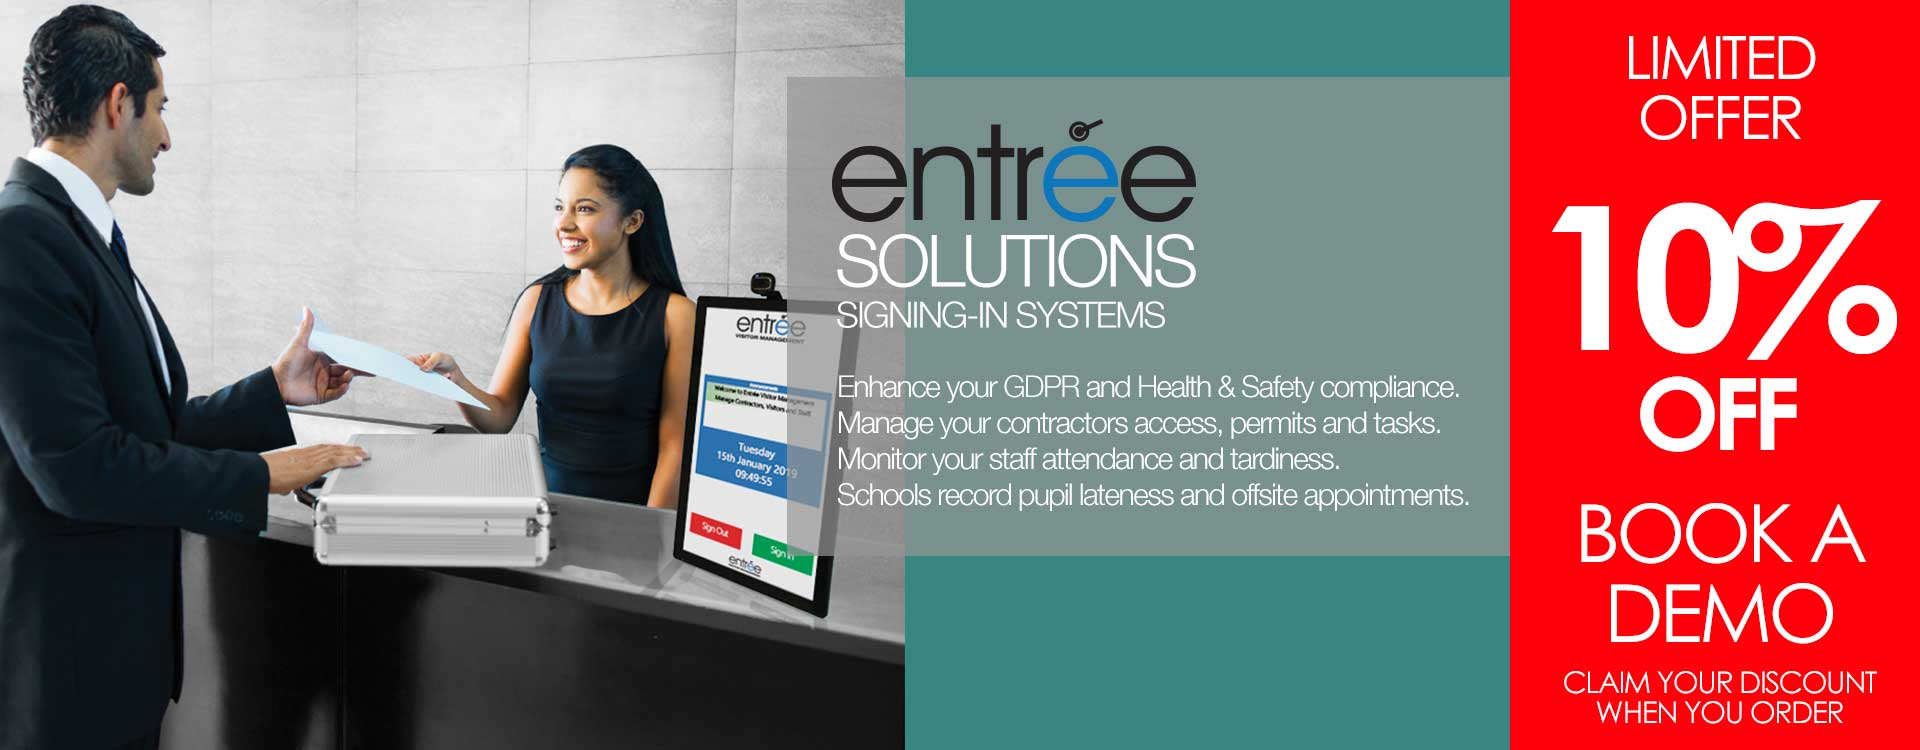 Entrée solutions signing in systems. Enhance your GDPR and Health and Safety compliance. Manage your contractors access. permits and tasks. Monitor your staff attendance and tardiness. Schools record pupil lateness and offsite appointments. Get a 10% discount when your order.